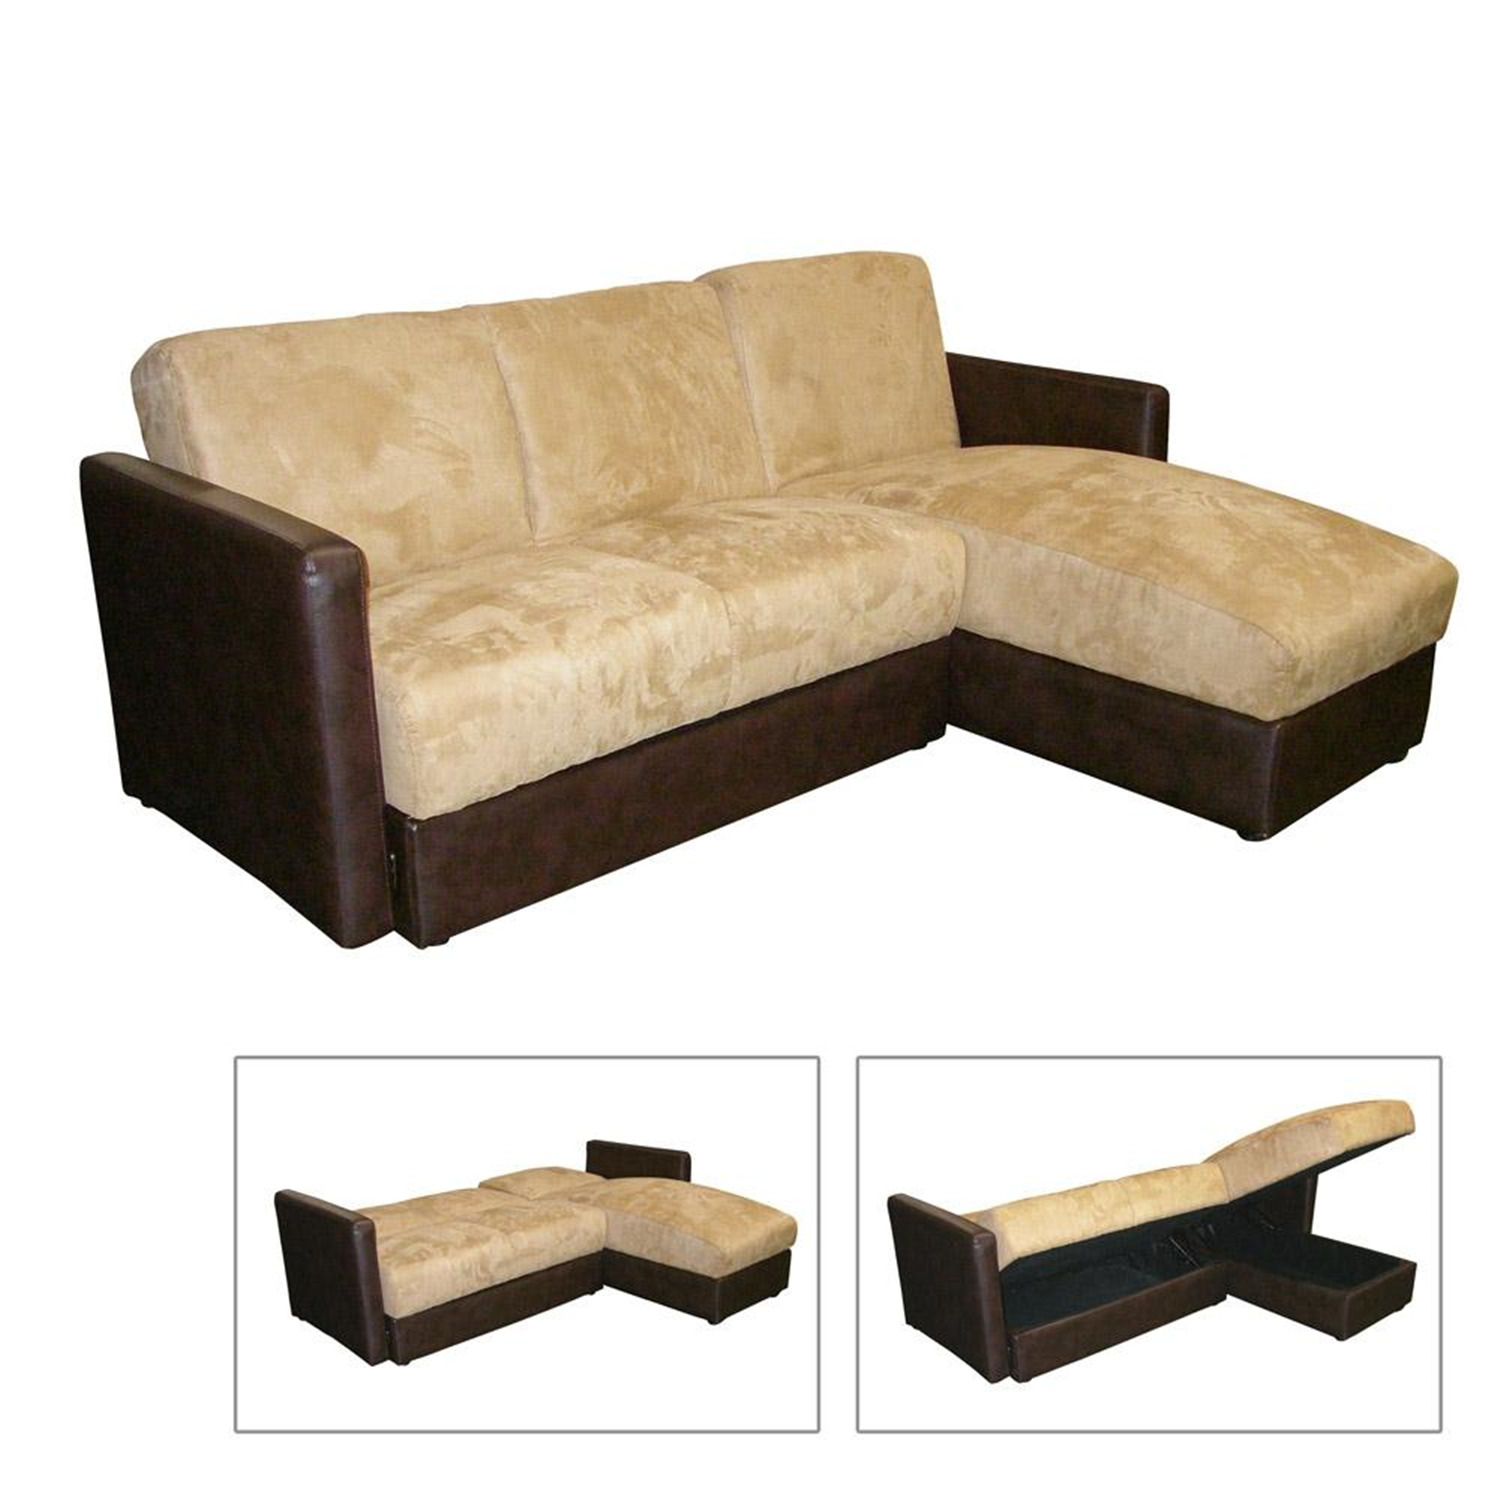 Ore International R8116cc Sofa Bed With Storage